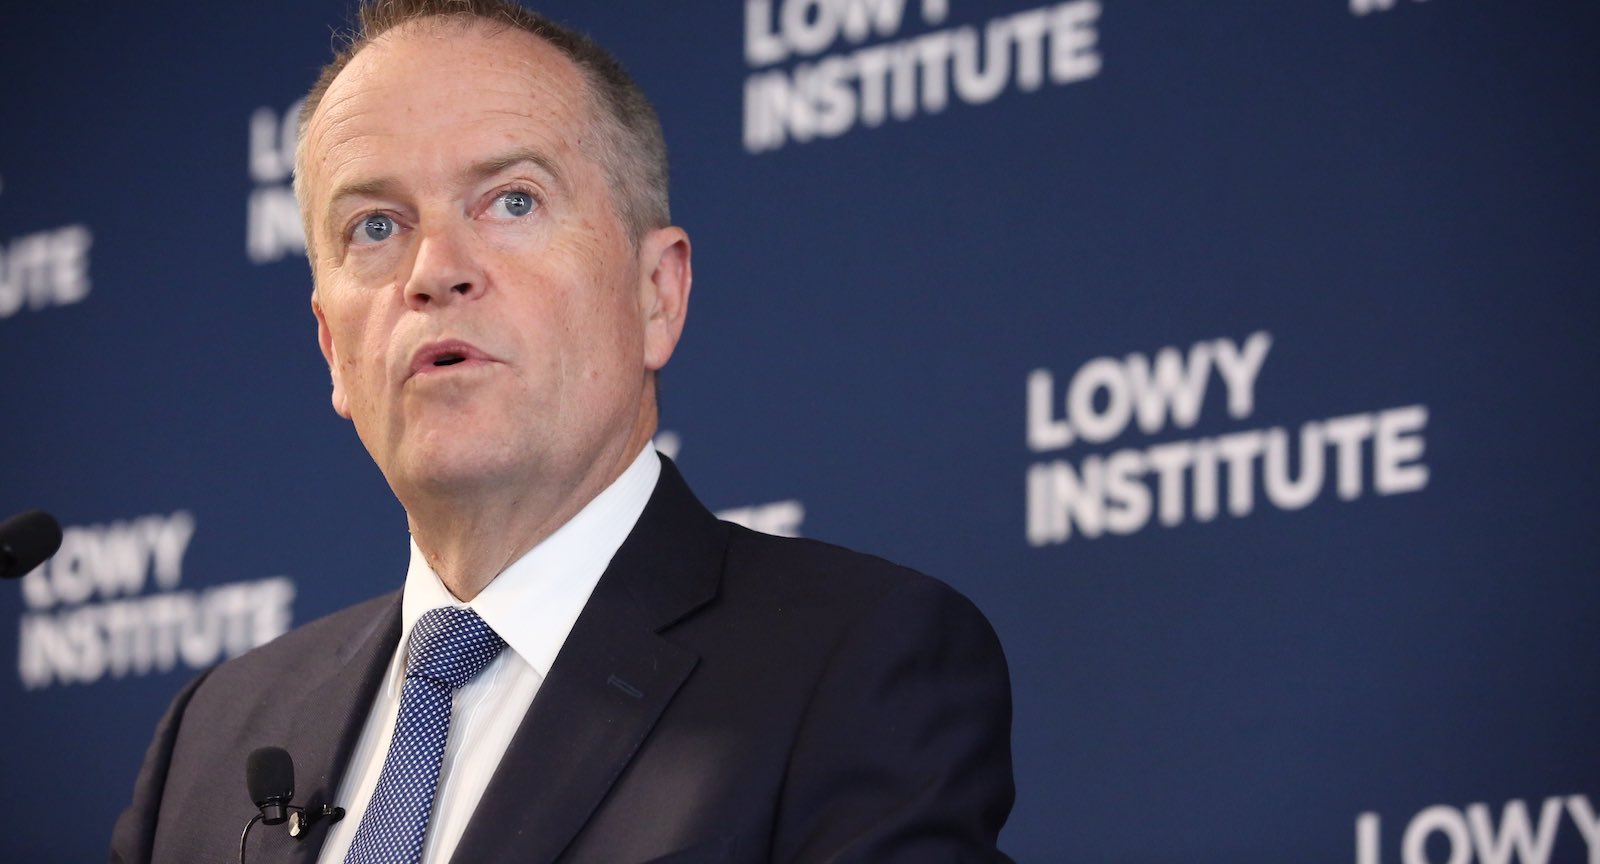 Opposition leader Bill Shorten at the Lowy Institute, 29 October 2018 (Photo: Peter Morris/Sydney Heads)